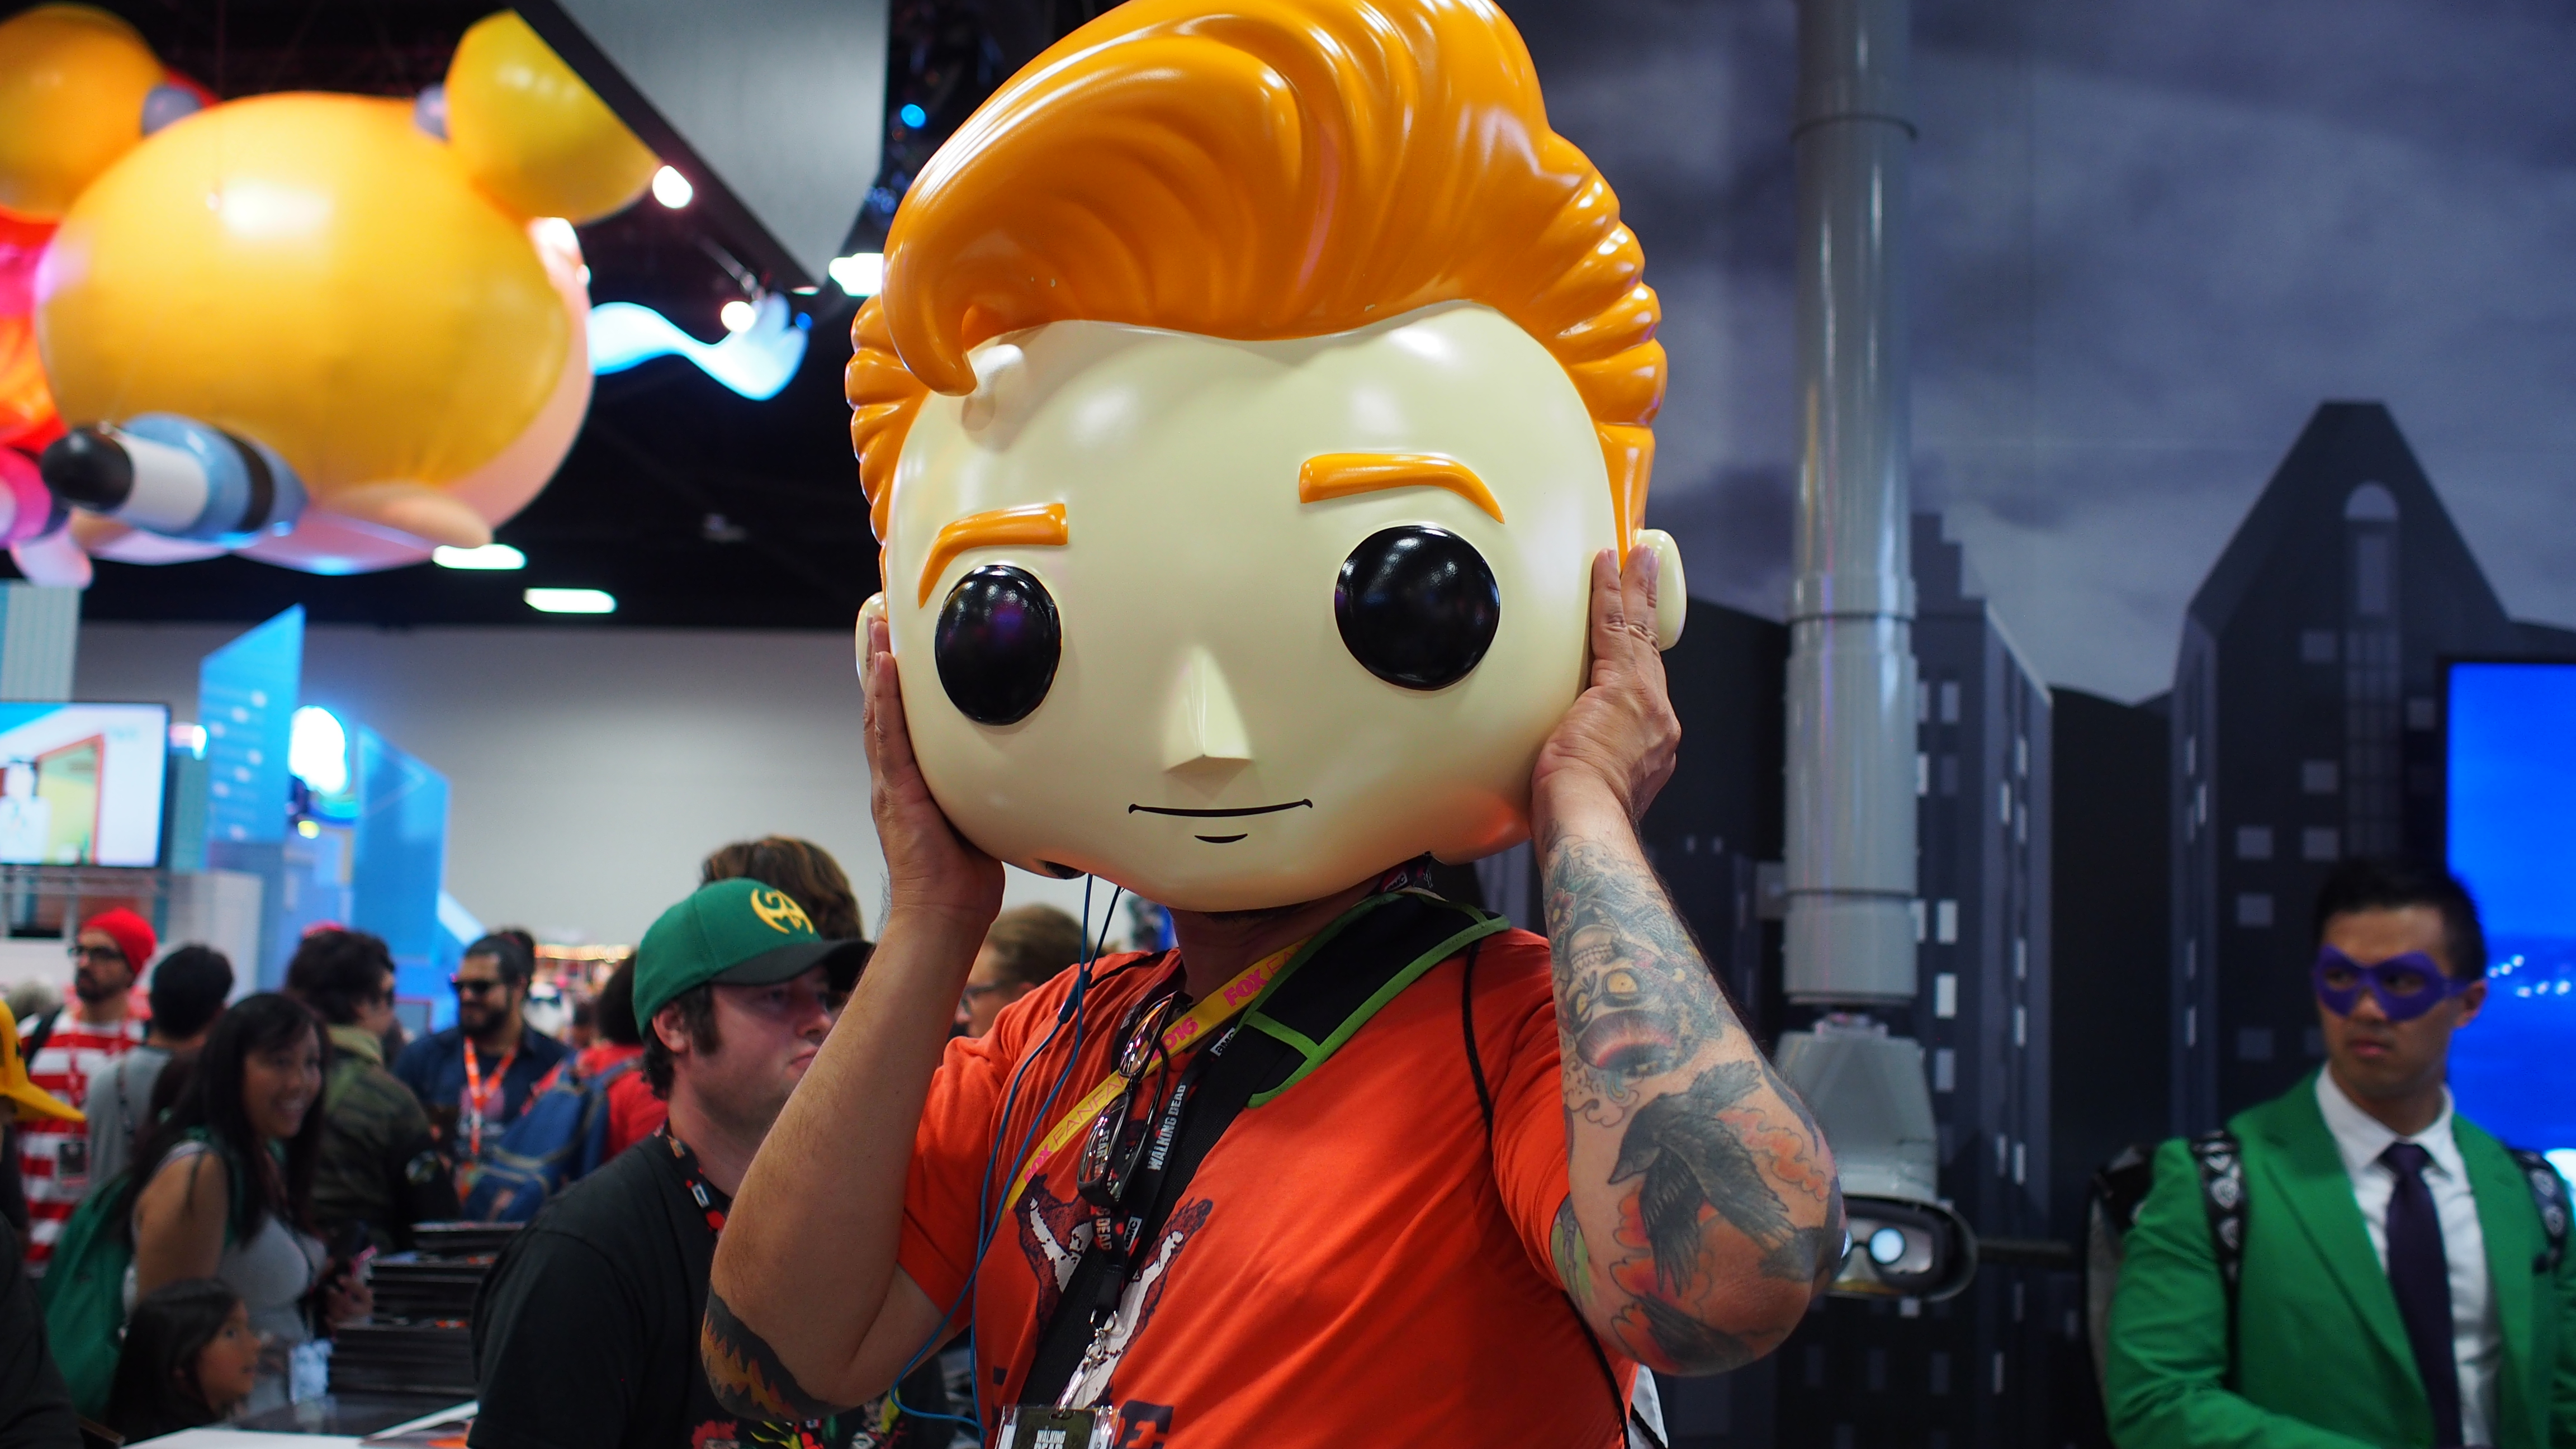 Comic Con 2016 The Best Cosplay And Costumes Techradar